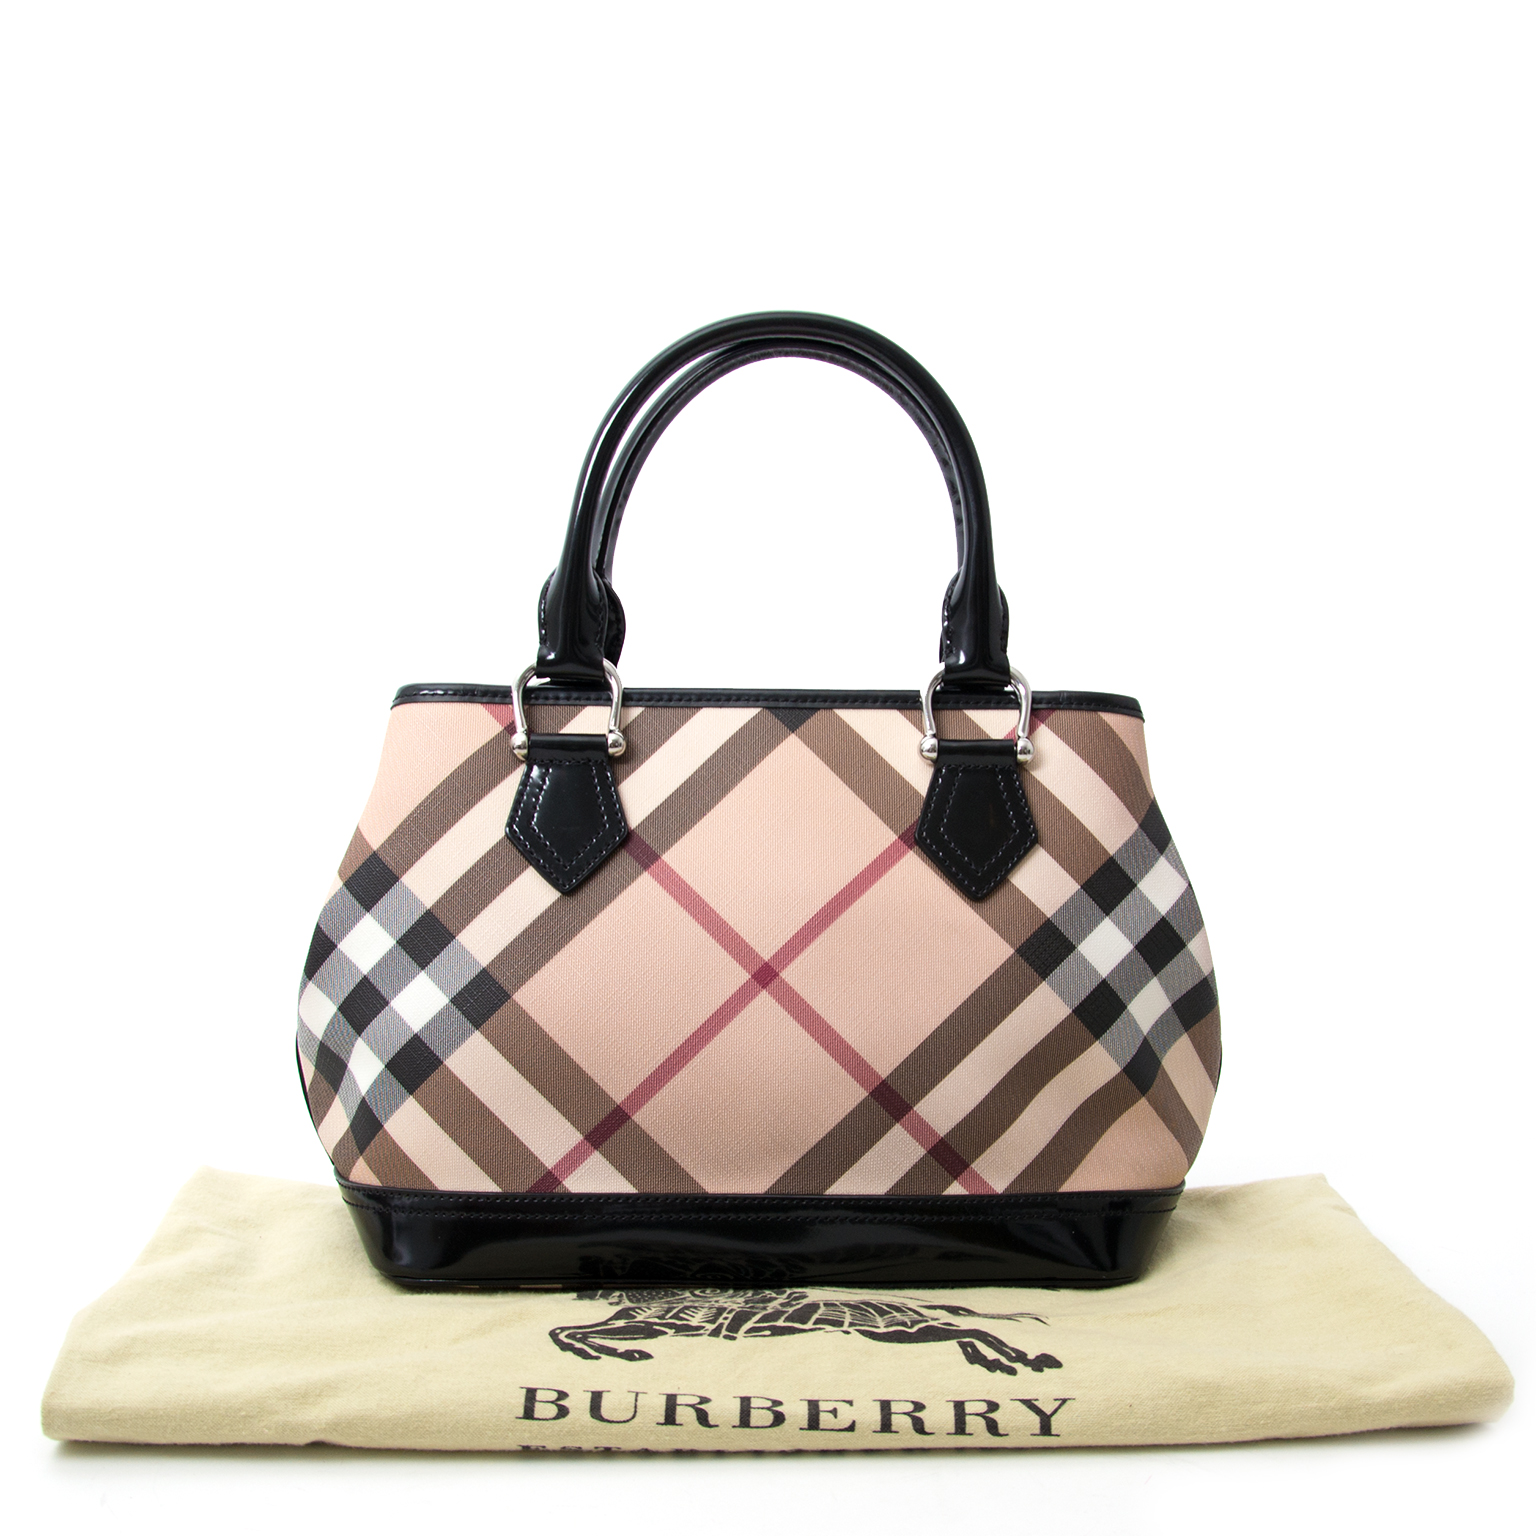 022a7b972f Labellov Burberry Nova Check Mini Tote Bag ○ Buy and Sell Authentic ...